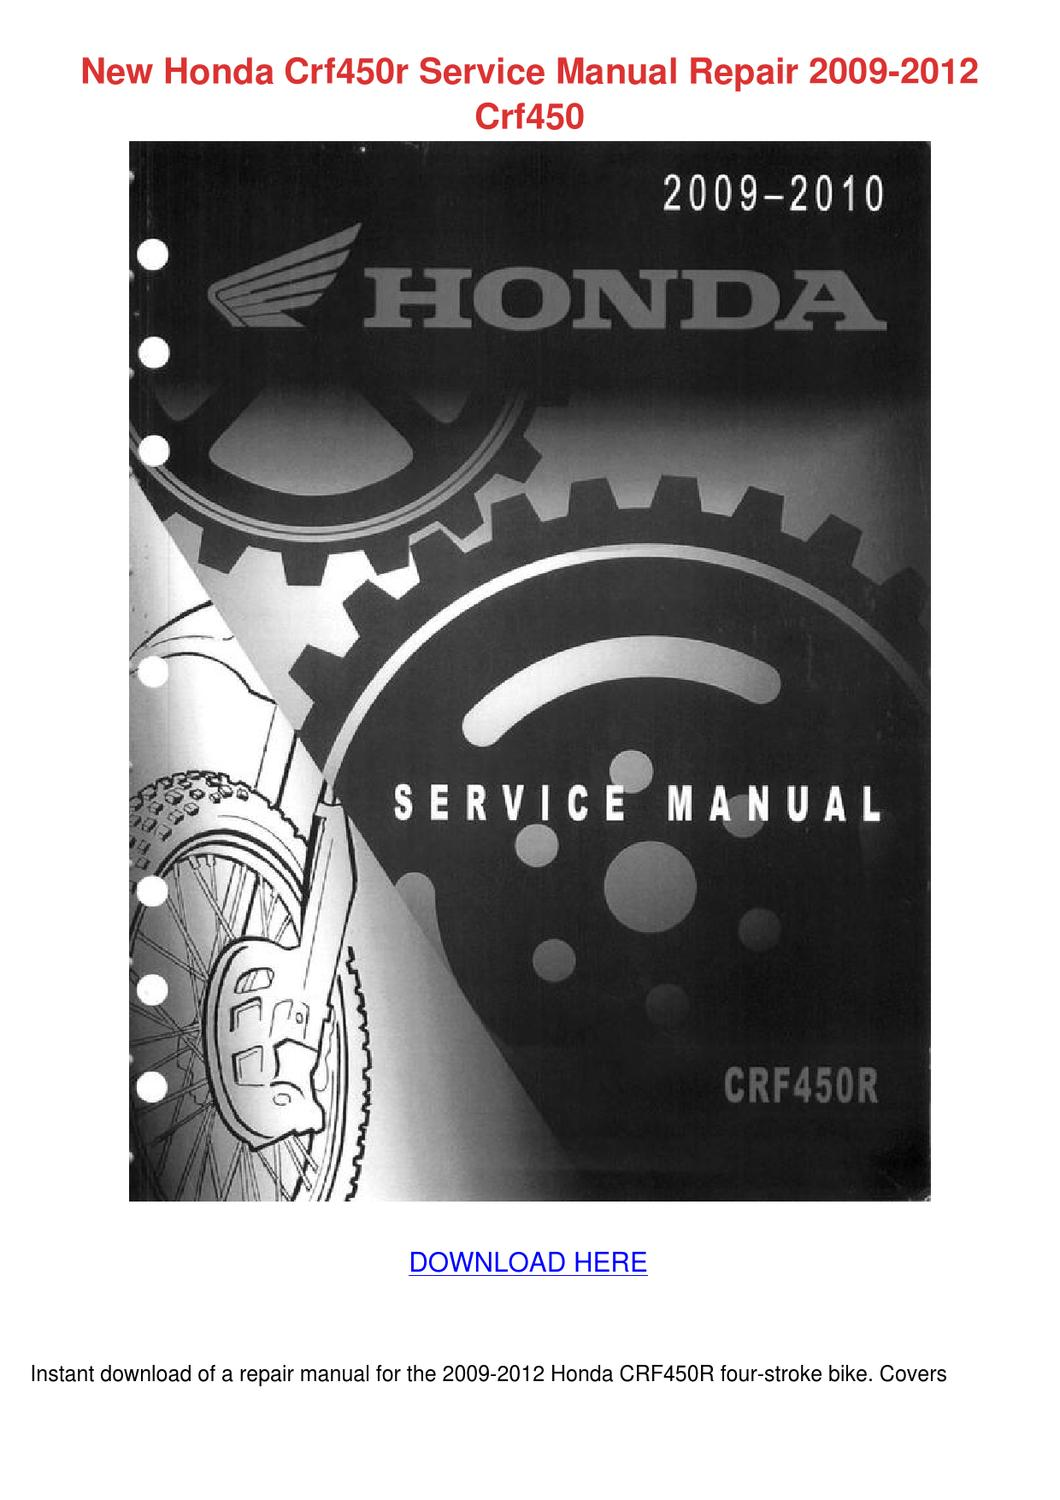 New Honda Crf450r Service Manual Repair 2009